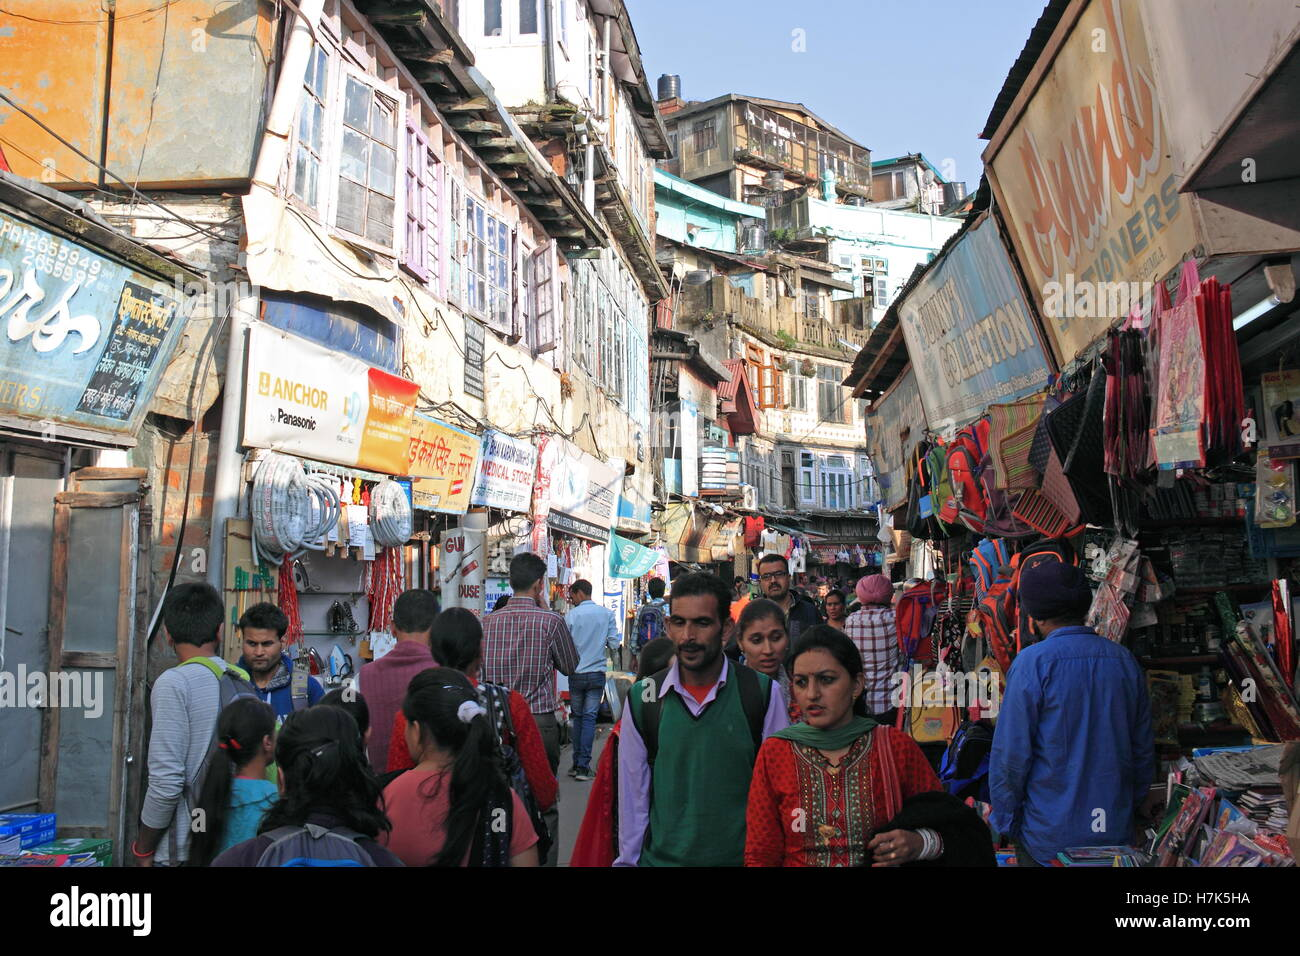 Lower Bazar, Shimla, Himachal Pradesh, India, Indian subcontinent, South Asia Stock Photo